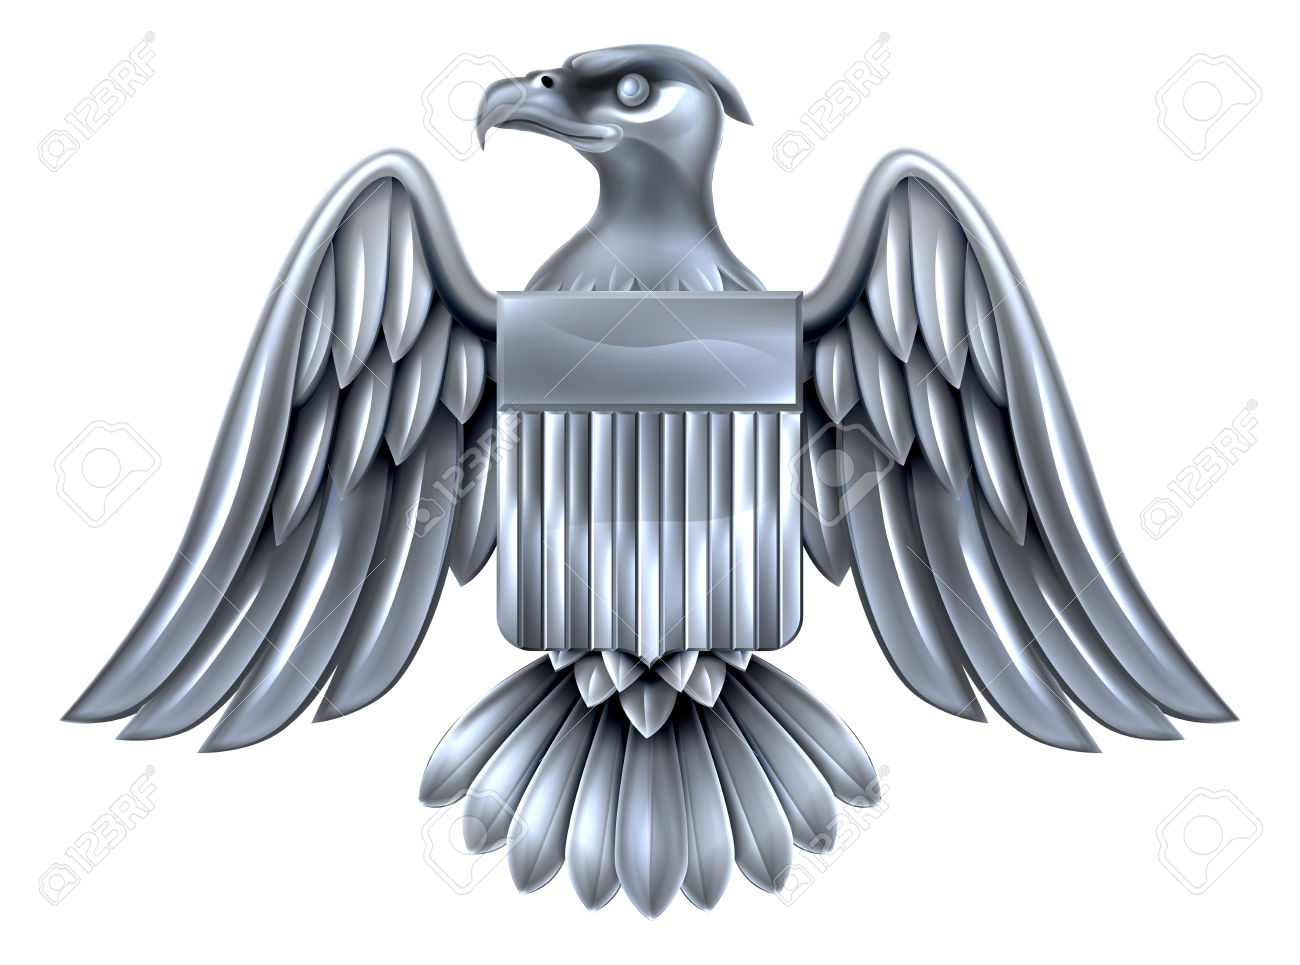 Silver Metal American Eagle Design With Bald Eagle Of The United.